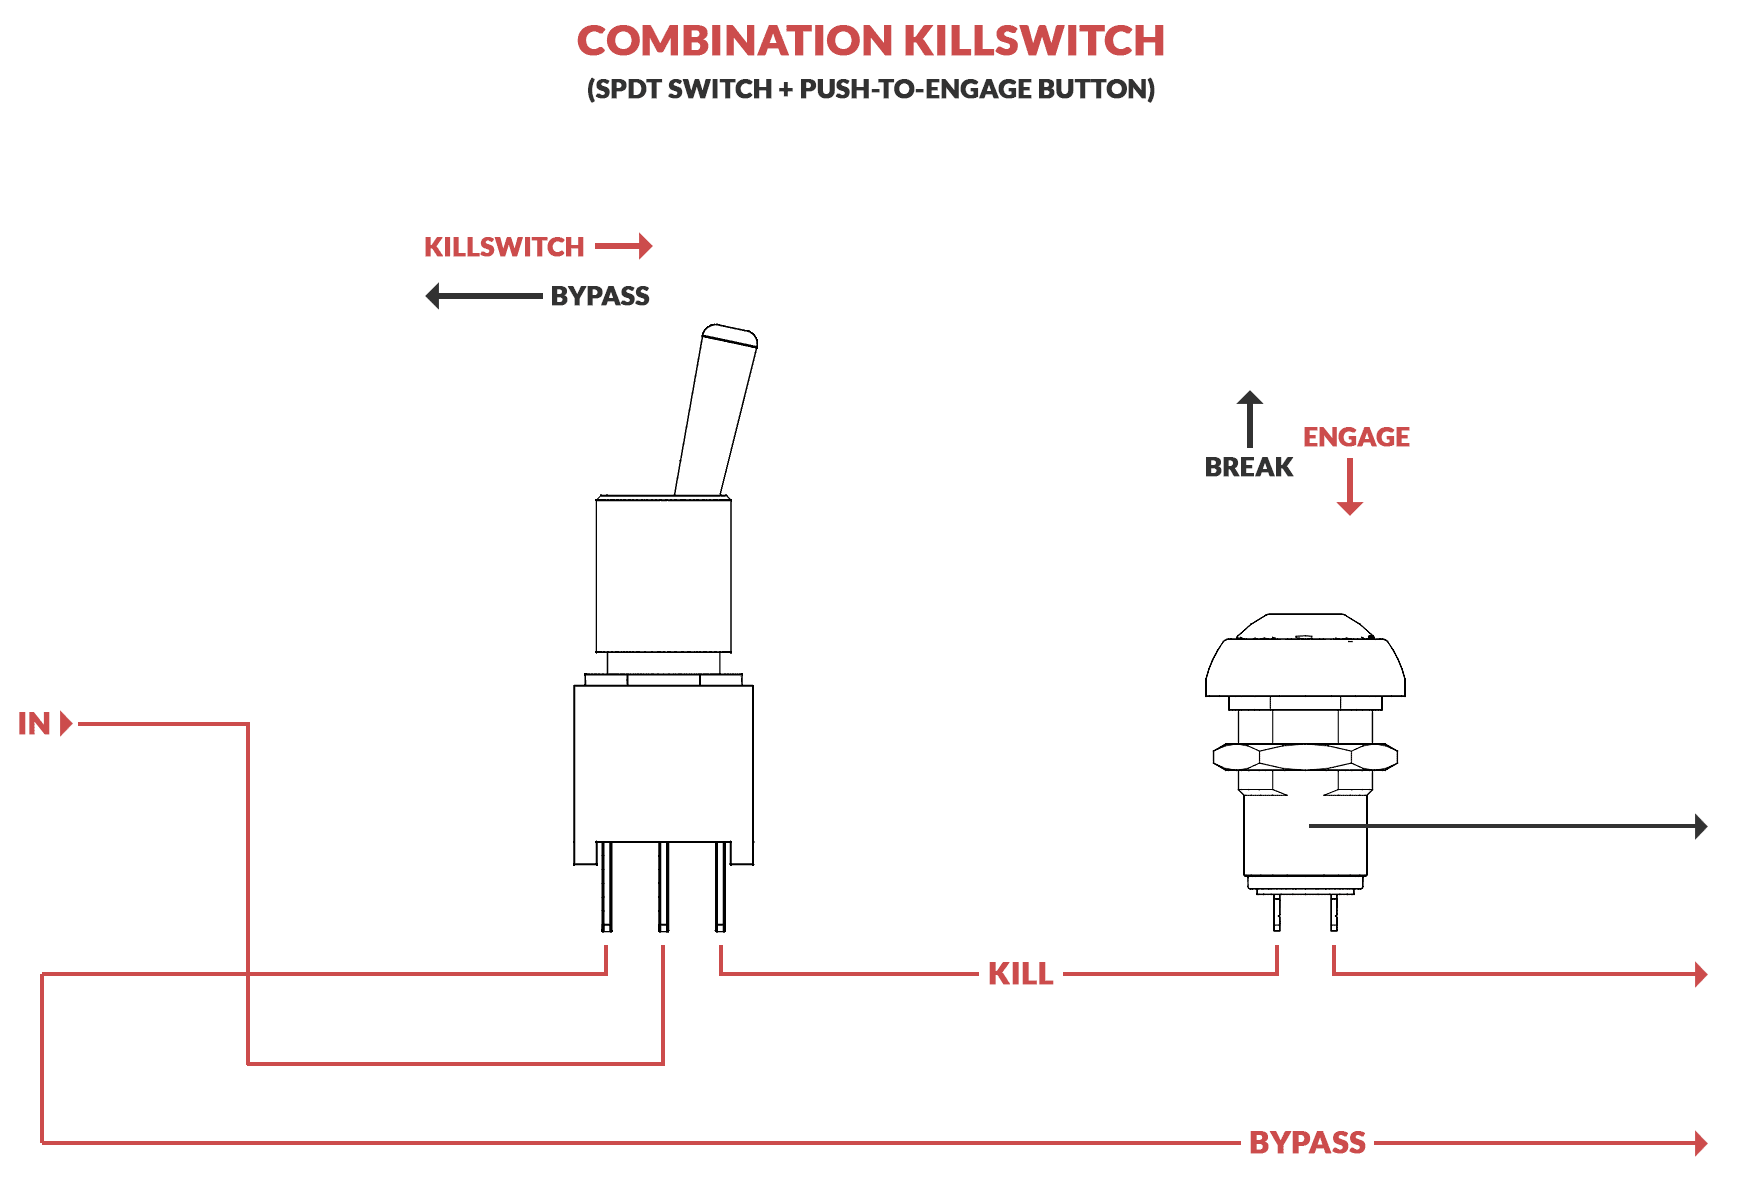 9v battery diagram th400 kickdown case connector how to build a killswitch for your guitar | electric herald